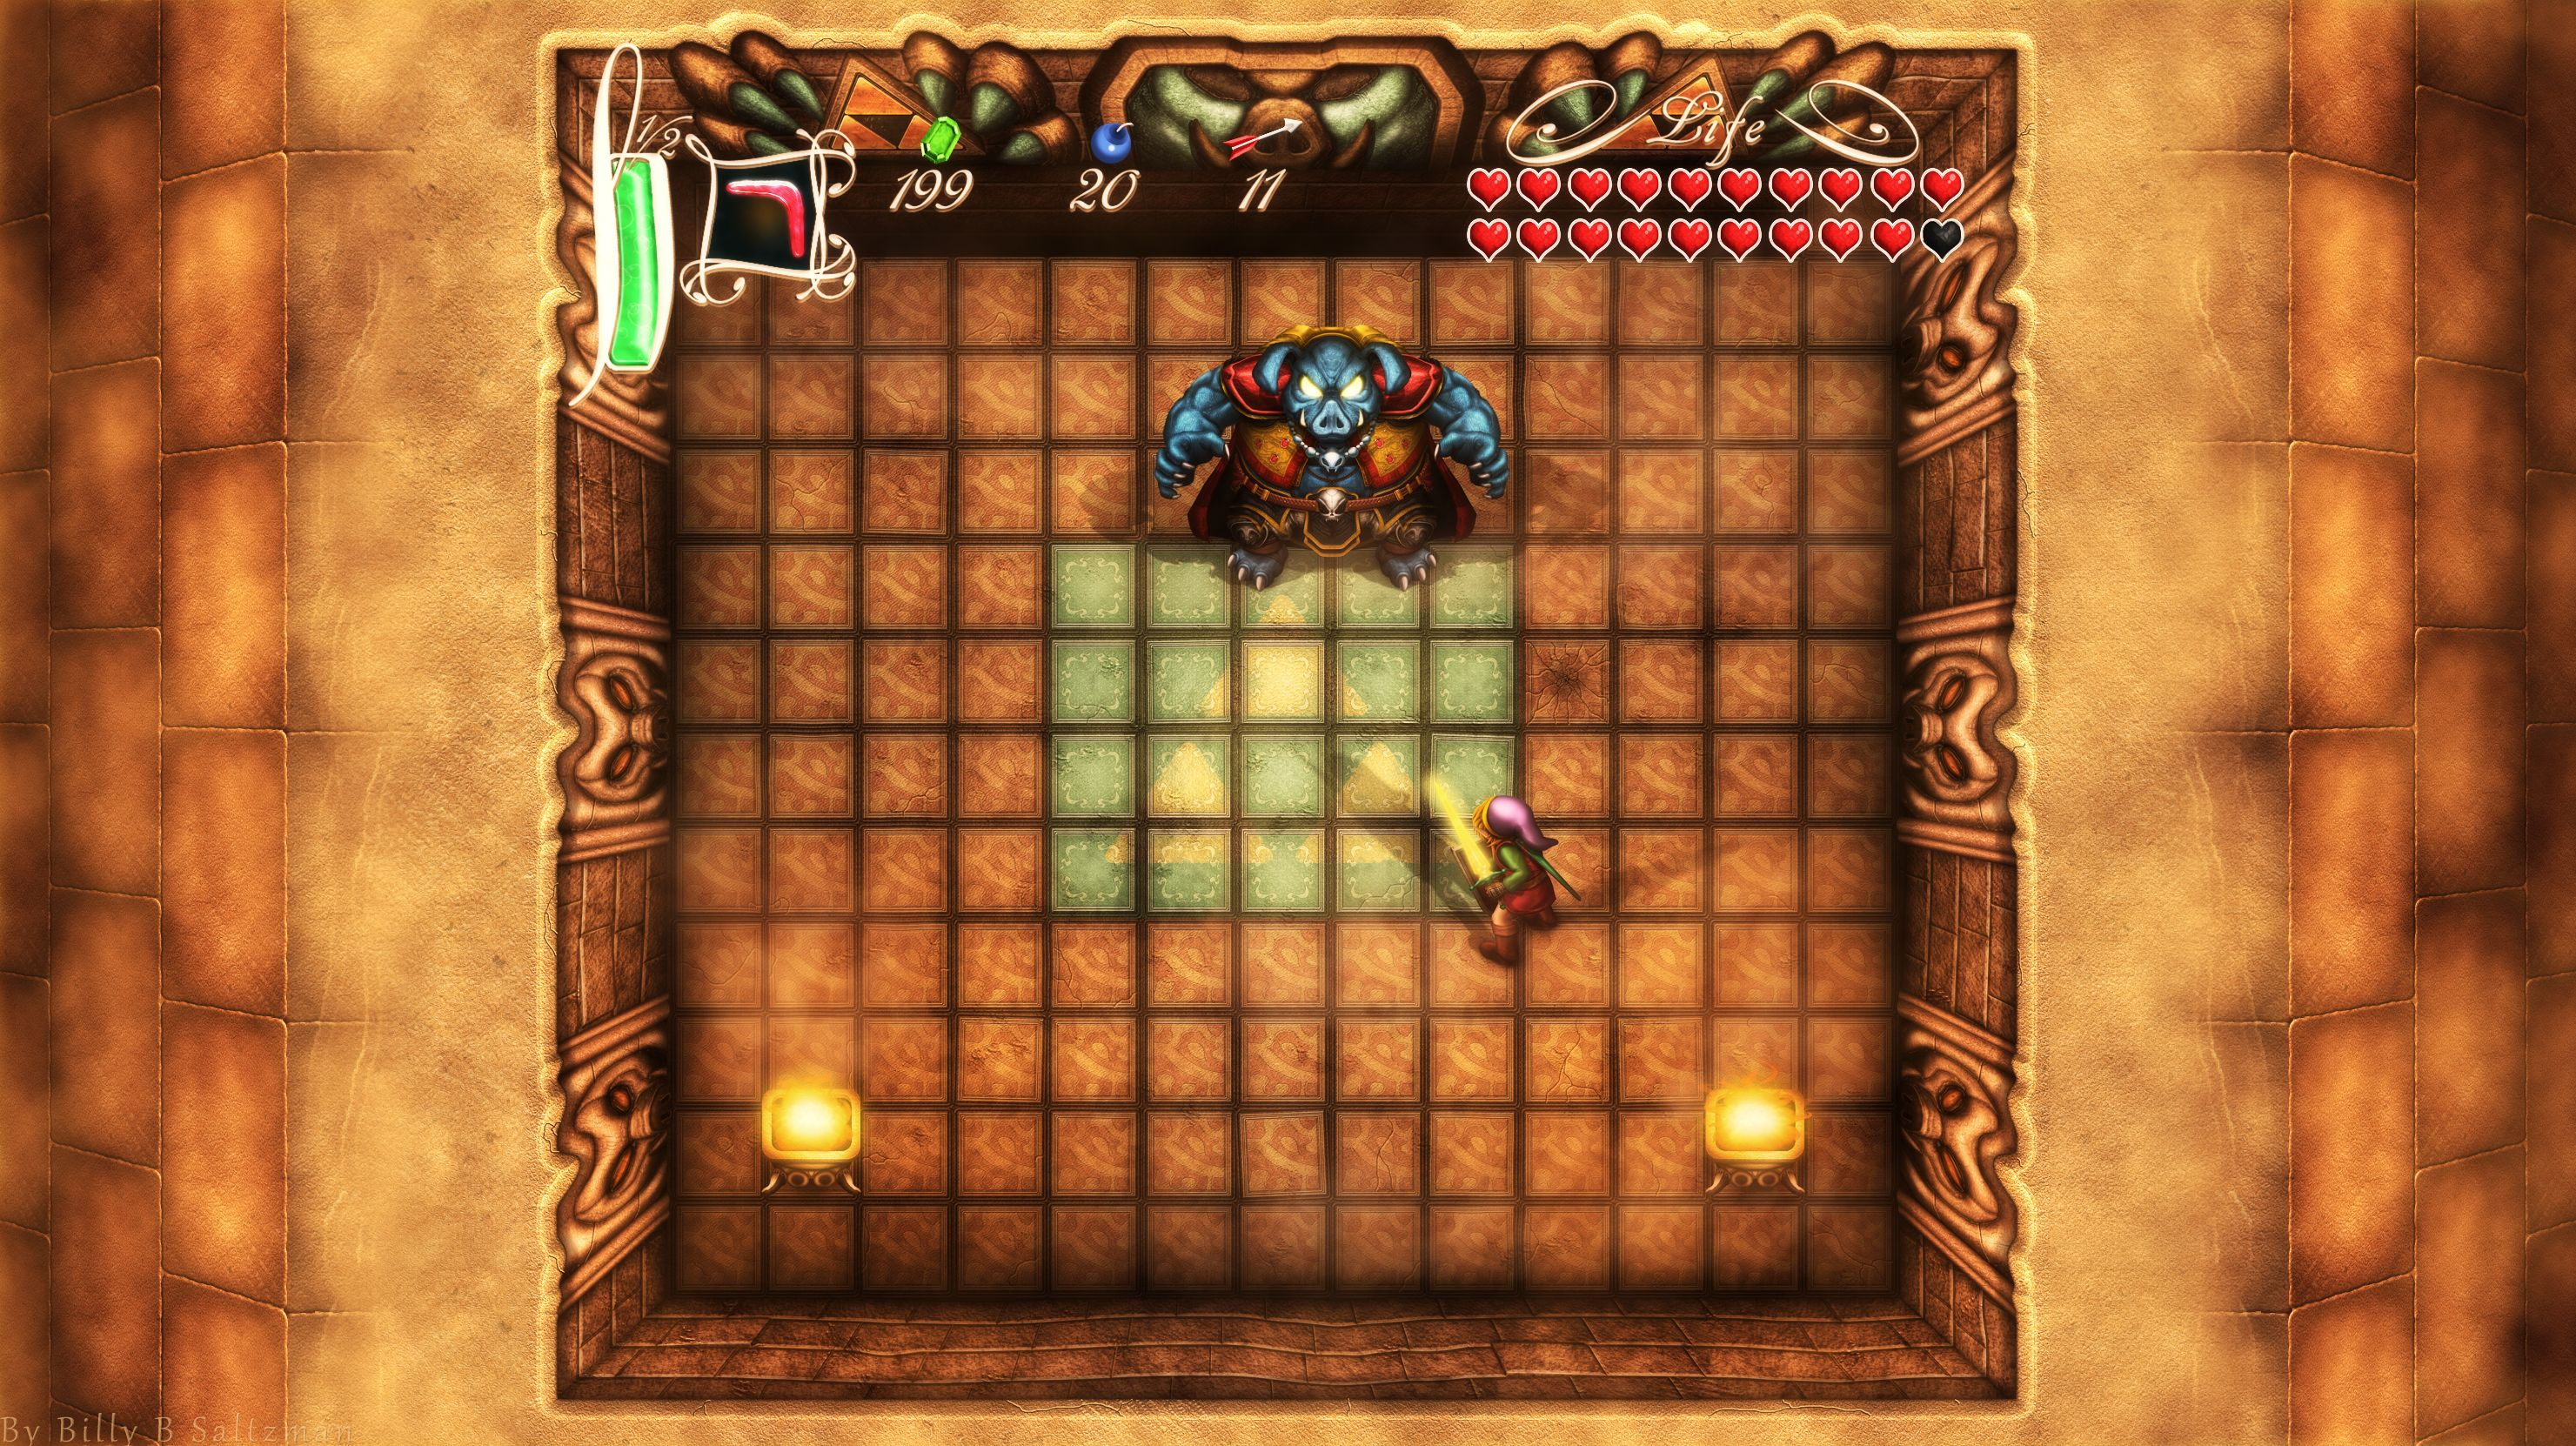 Link Vs Ganon From A Link To The Past In Hd Art By